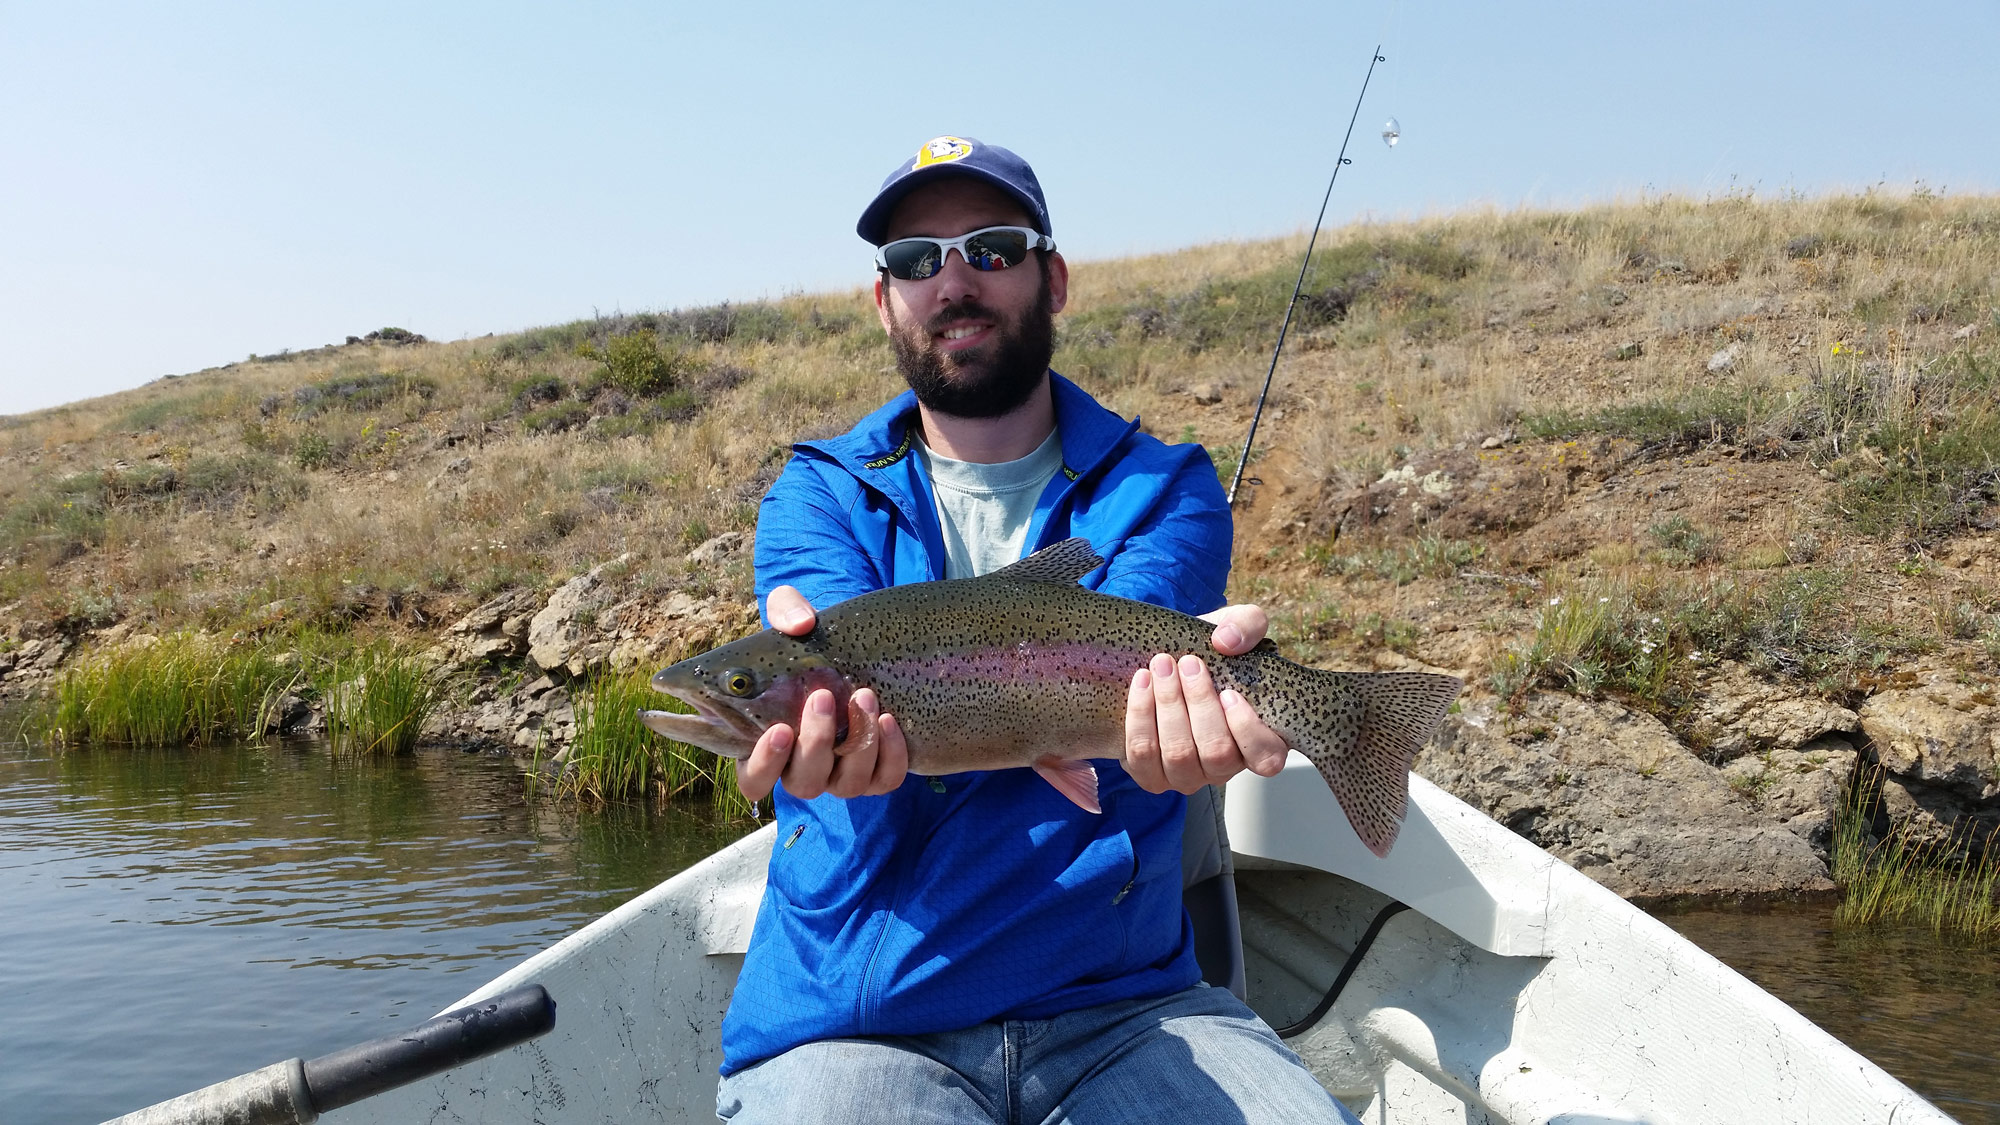 Miracle mile fishing report four seasons anglers for Miracle mile fishing